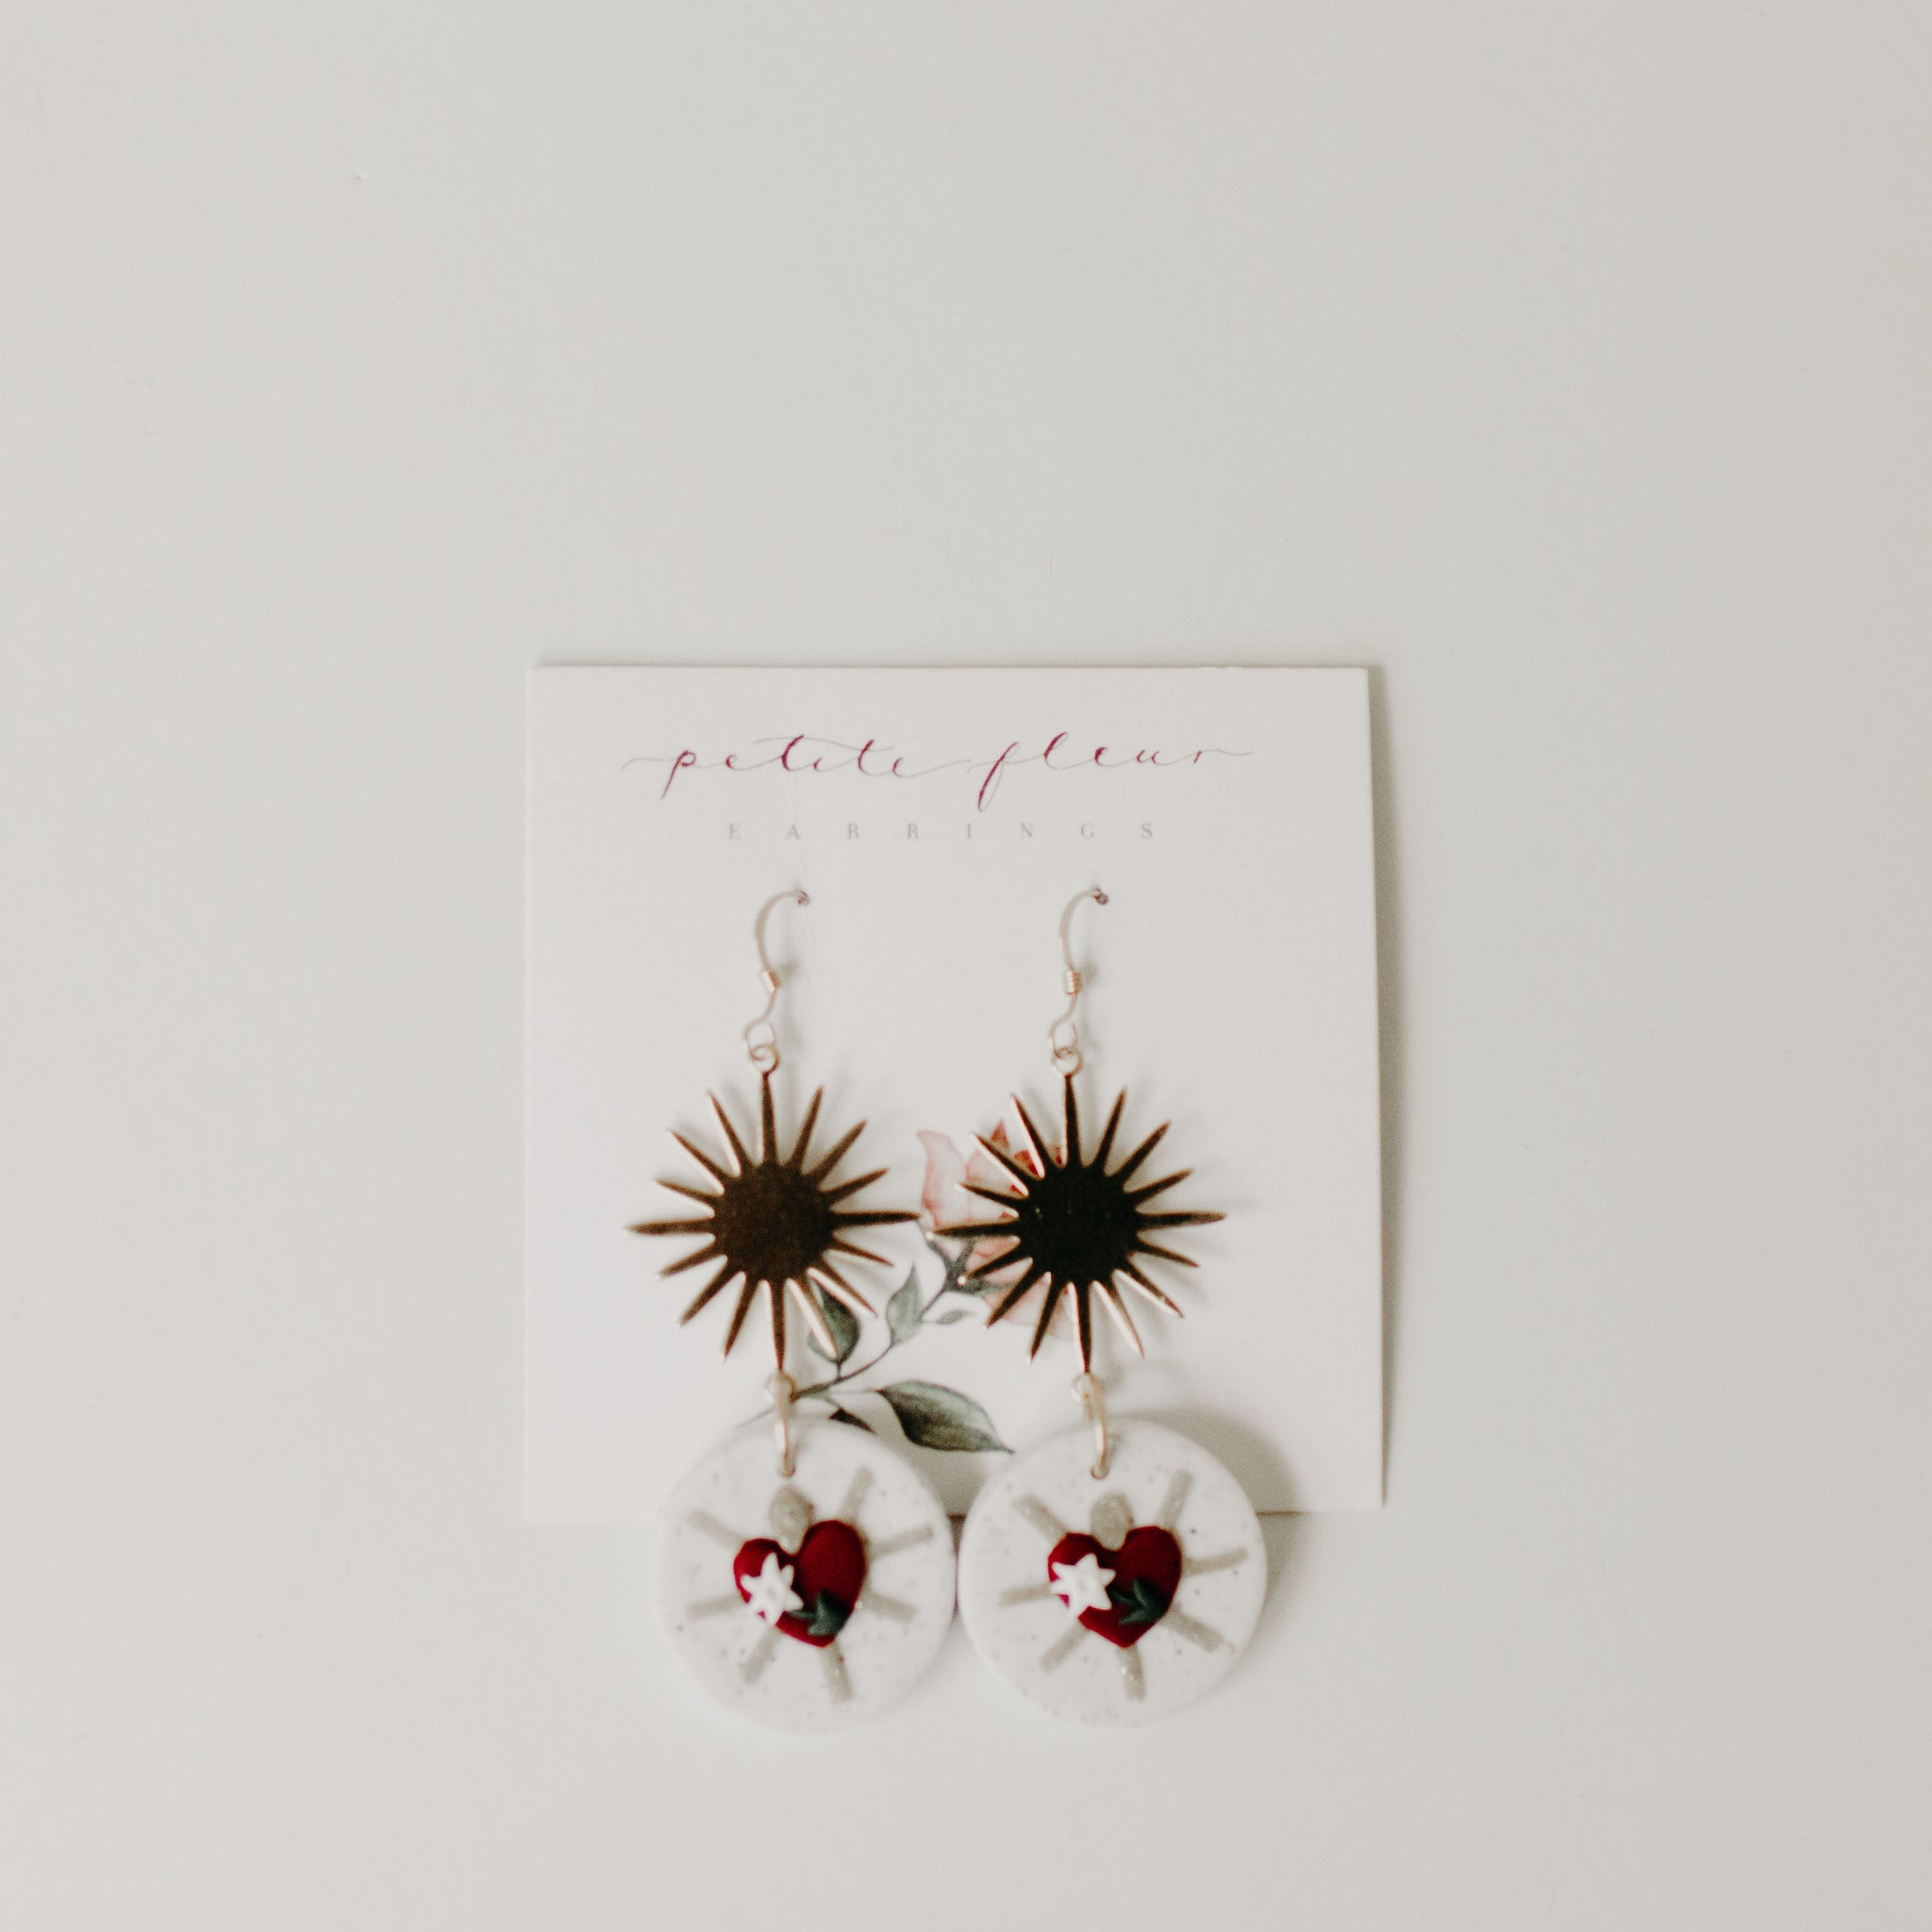 The Chaste Heart Earrings